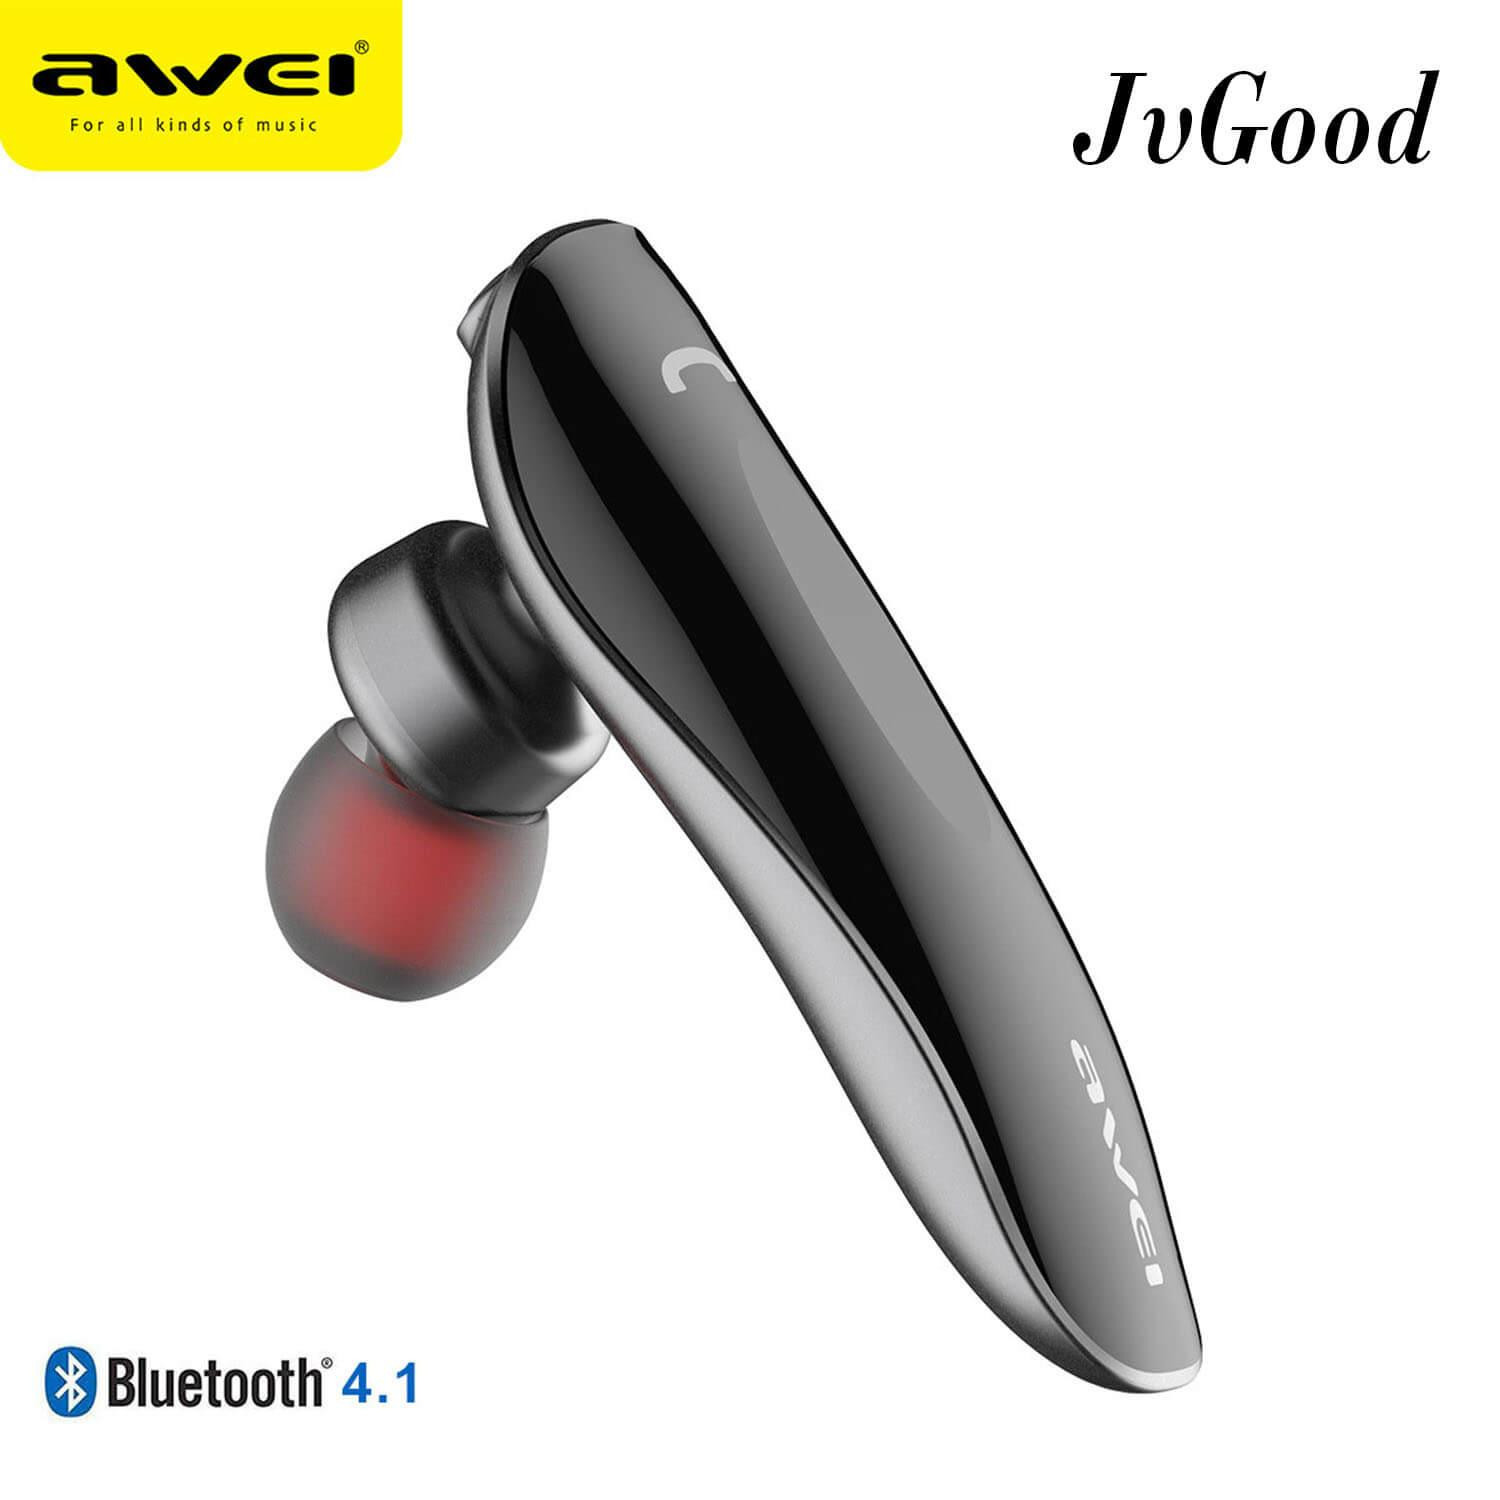 Compare Price Jvgood Multipoint Wireless Earphone Bluetooth Headset Headphone Business Portable Earbud Cordless Csr4 1 Jvgood On China